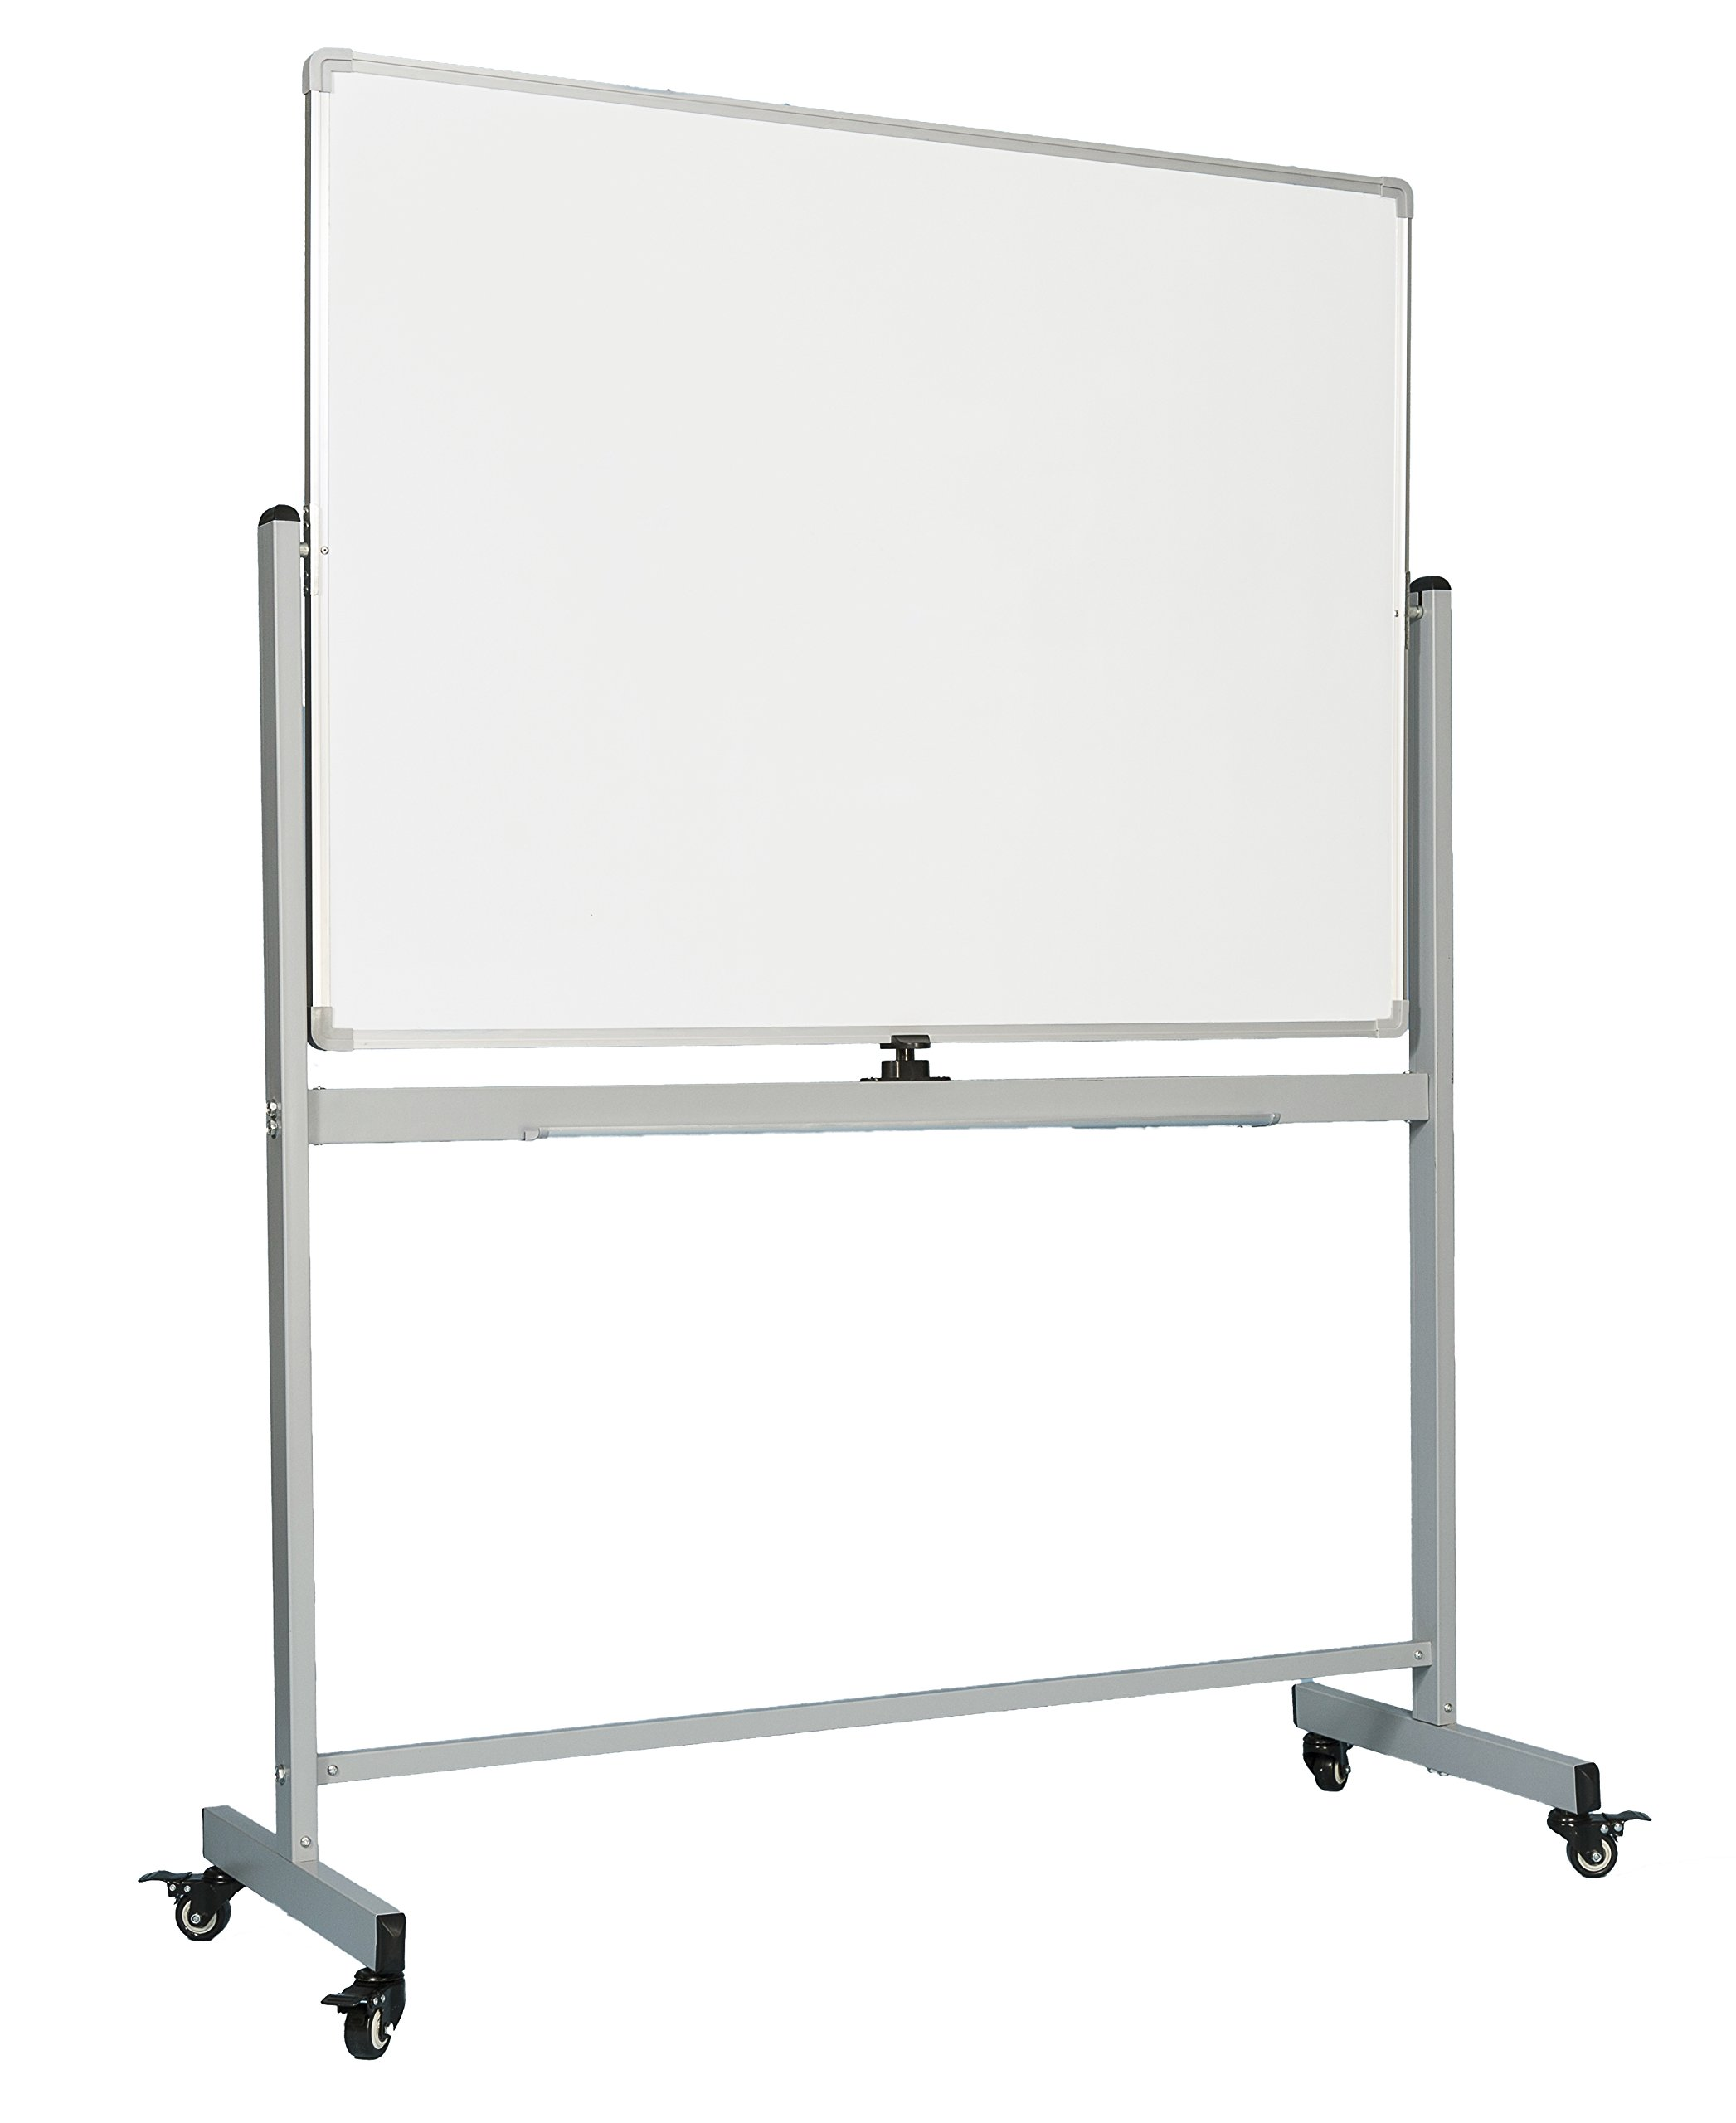 OfficeGenius Mobile Whiteboard on Wheels with Stand, 48x36 White Board, Magnetic Double Sided Dry Erase Marker Board w/Quick Flip Reversible Portable Standing Easel for Classrooms, Offices, Homeschool by OfficeGenius